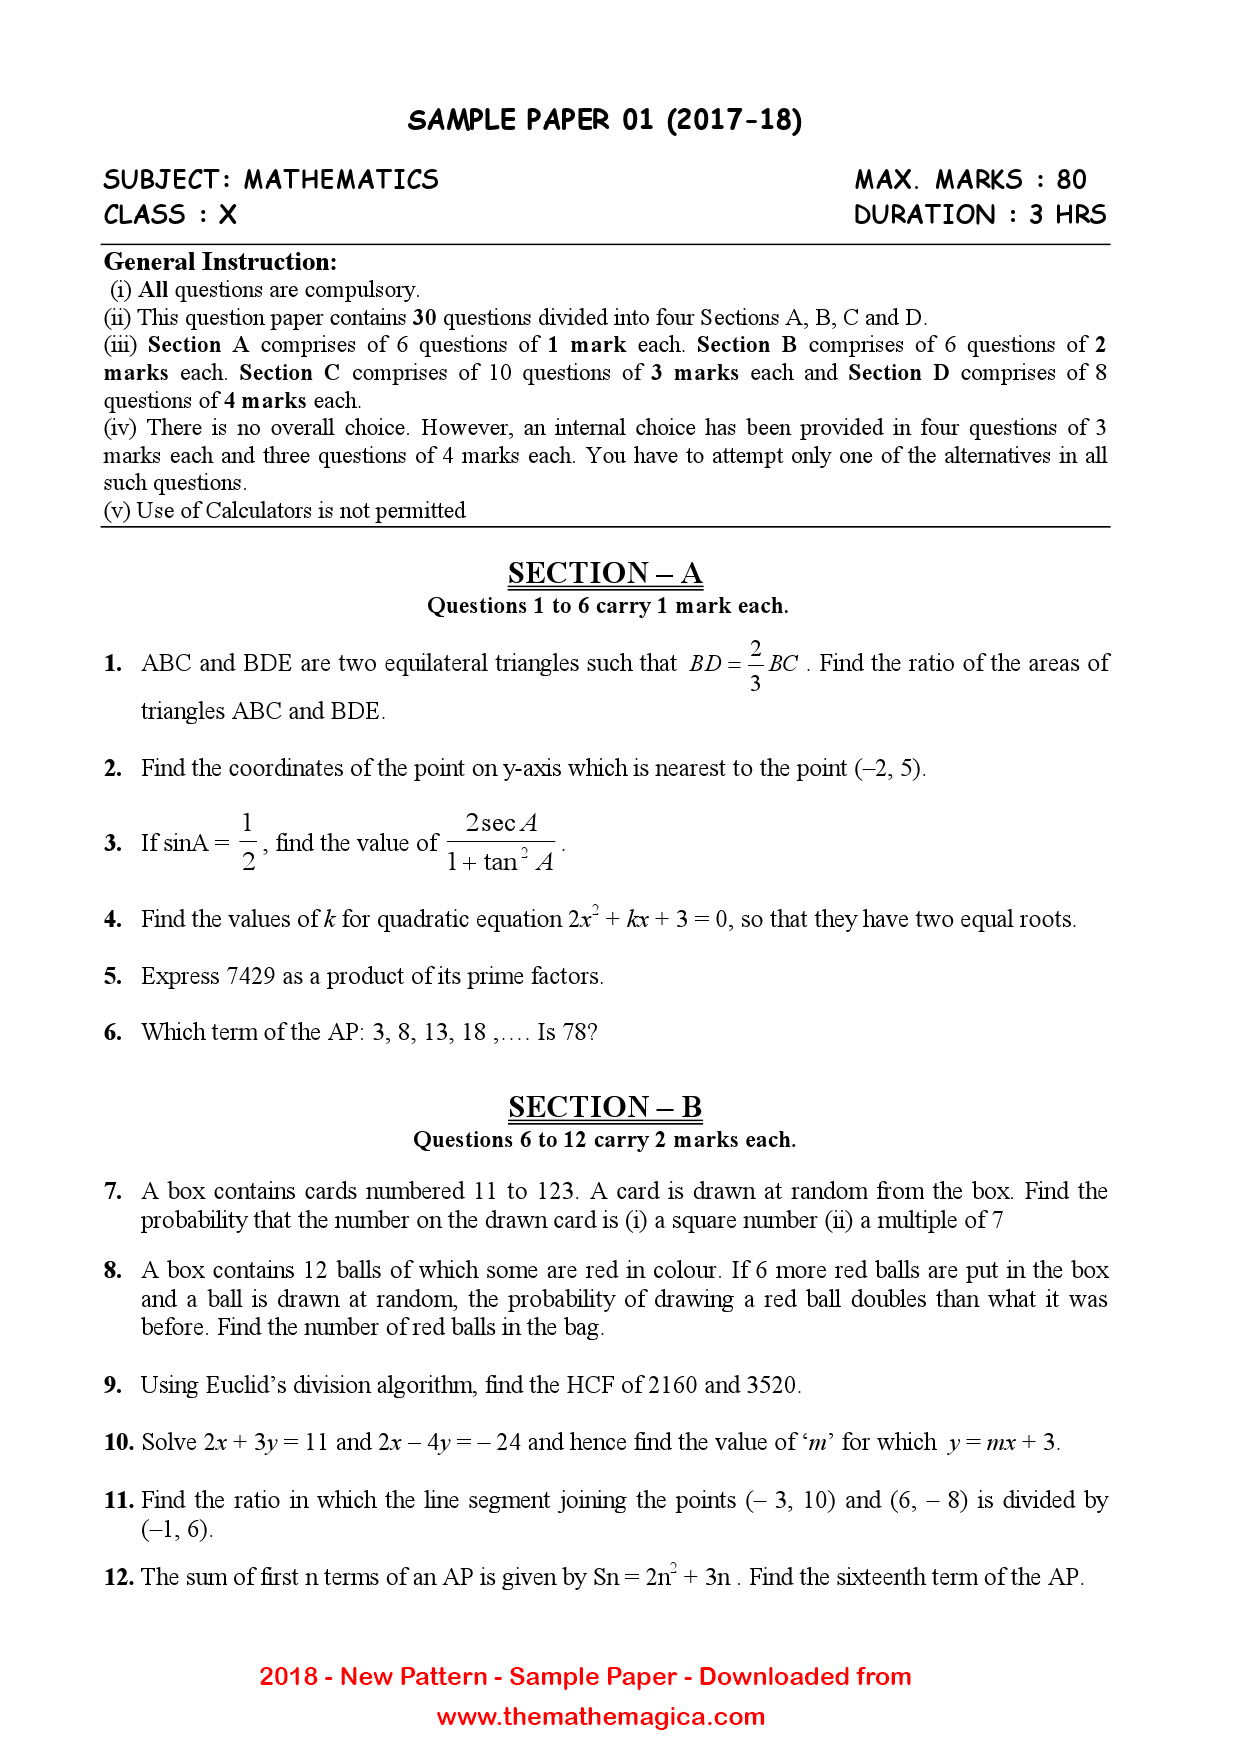 10th Cbse Sample Papers